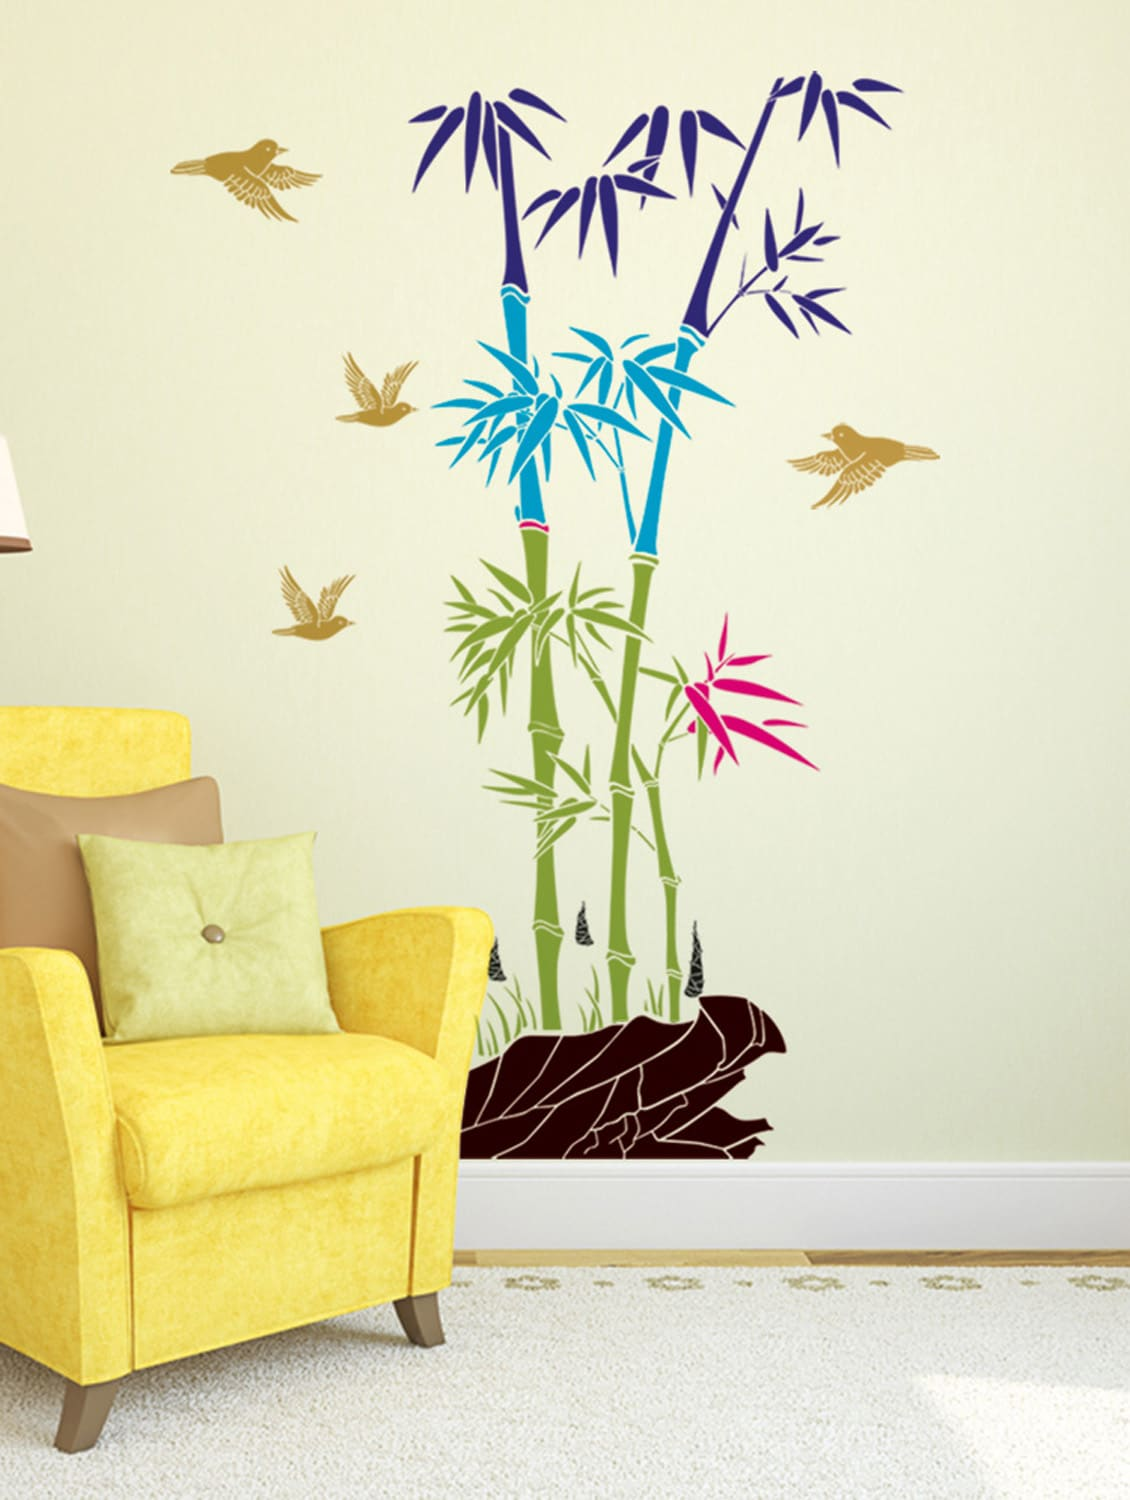 Buy Wall Stickers Bamboo Trees Colorful With Rocks And Birds Jungle ...